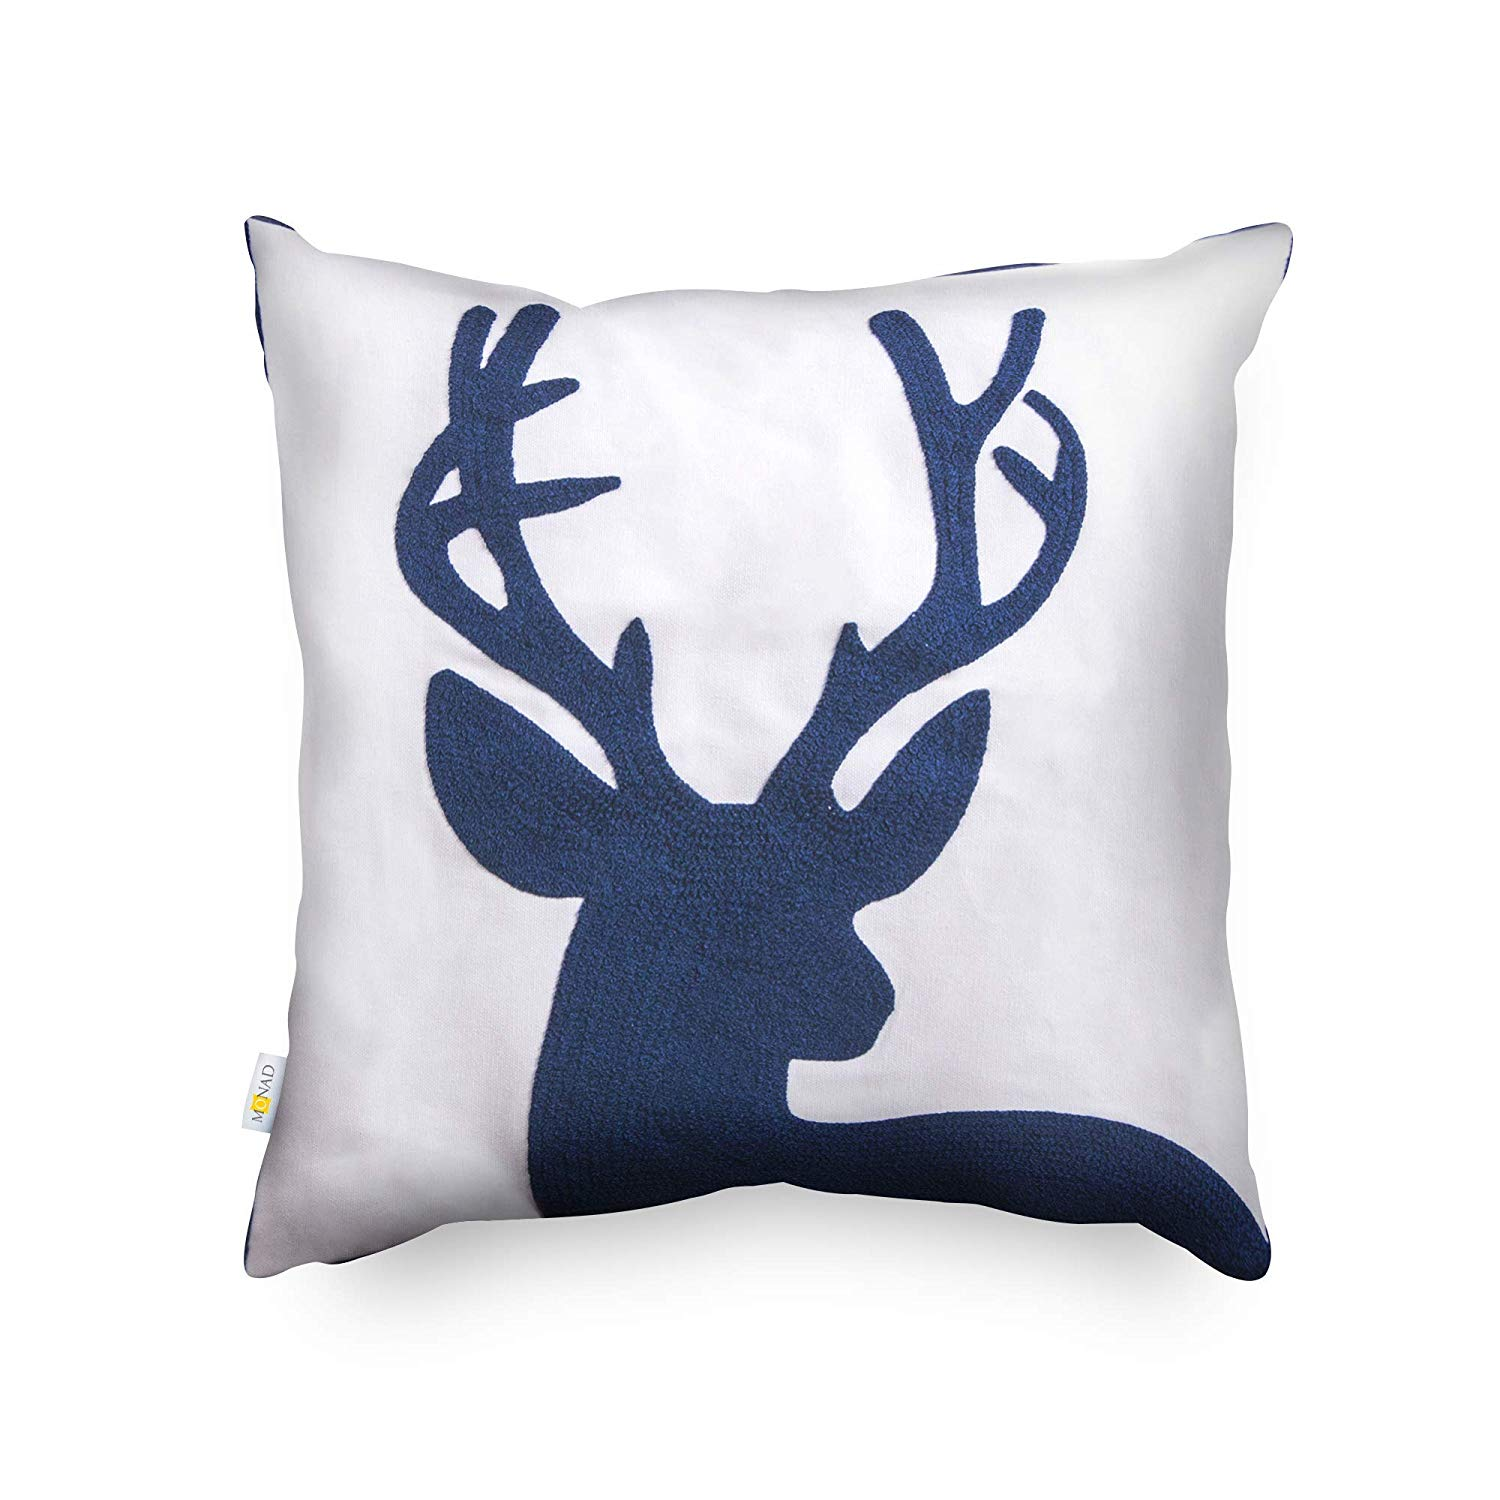 Embroidered Navy Reindeer Pillow Cover